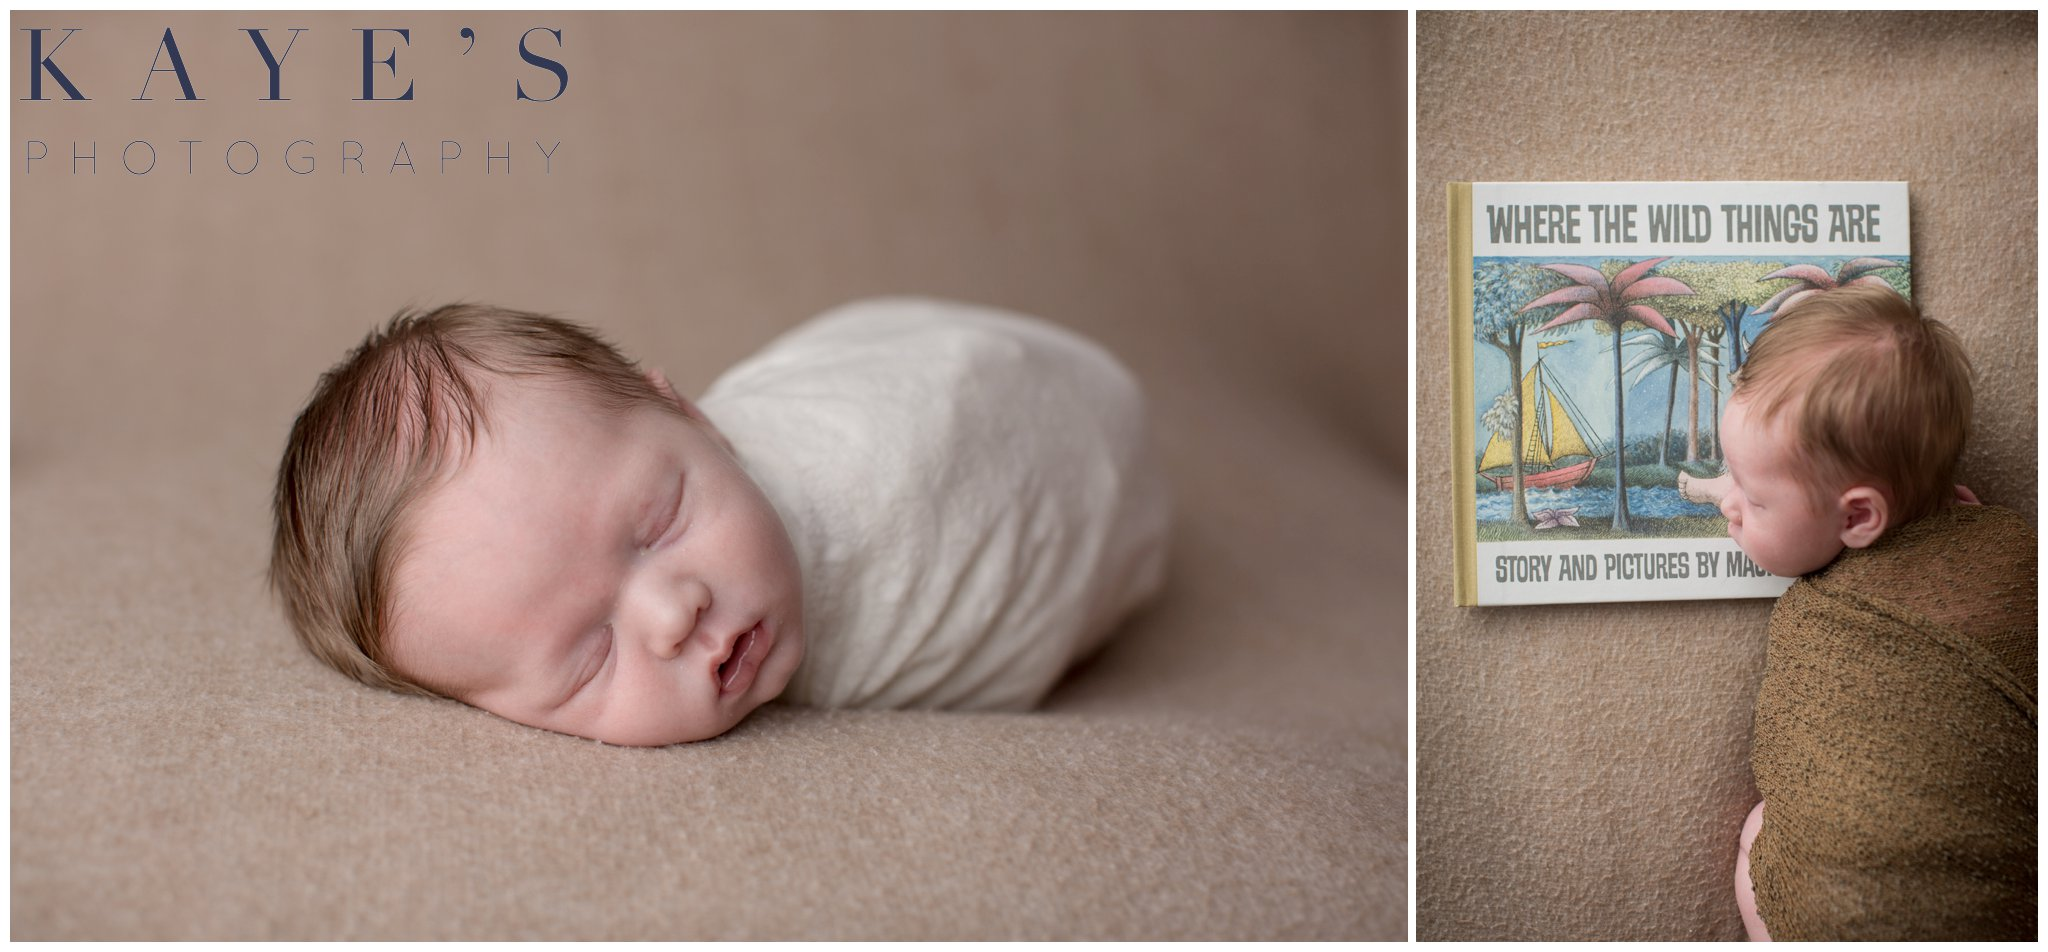 Baby boy on tan blanket wrapped laying on book sleeping